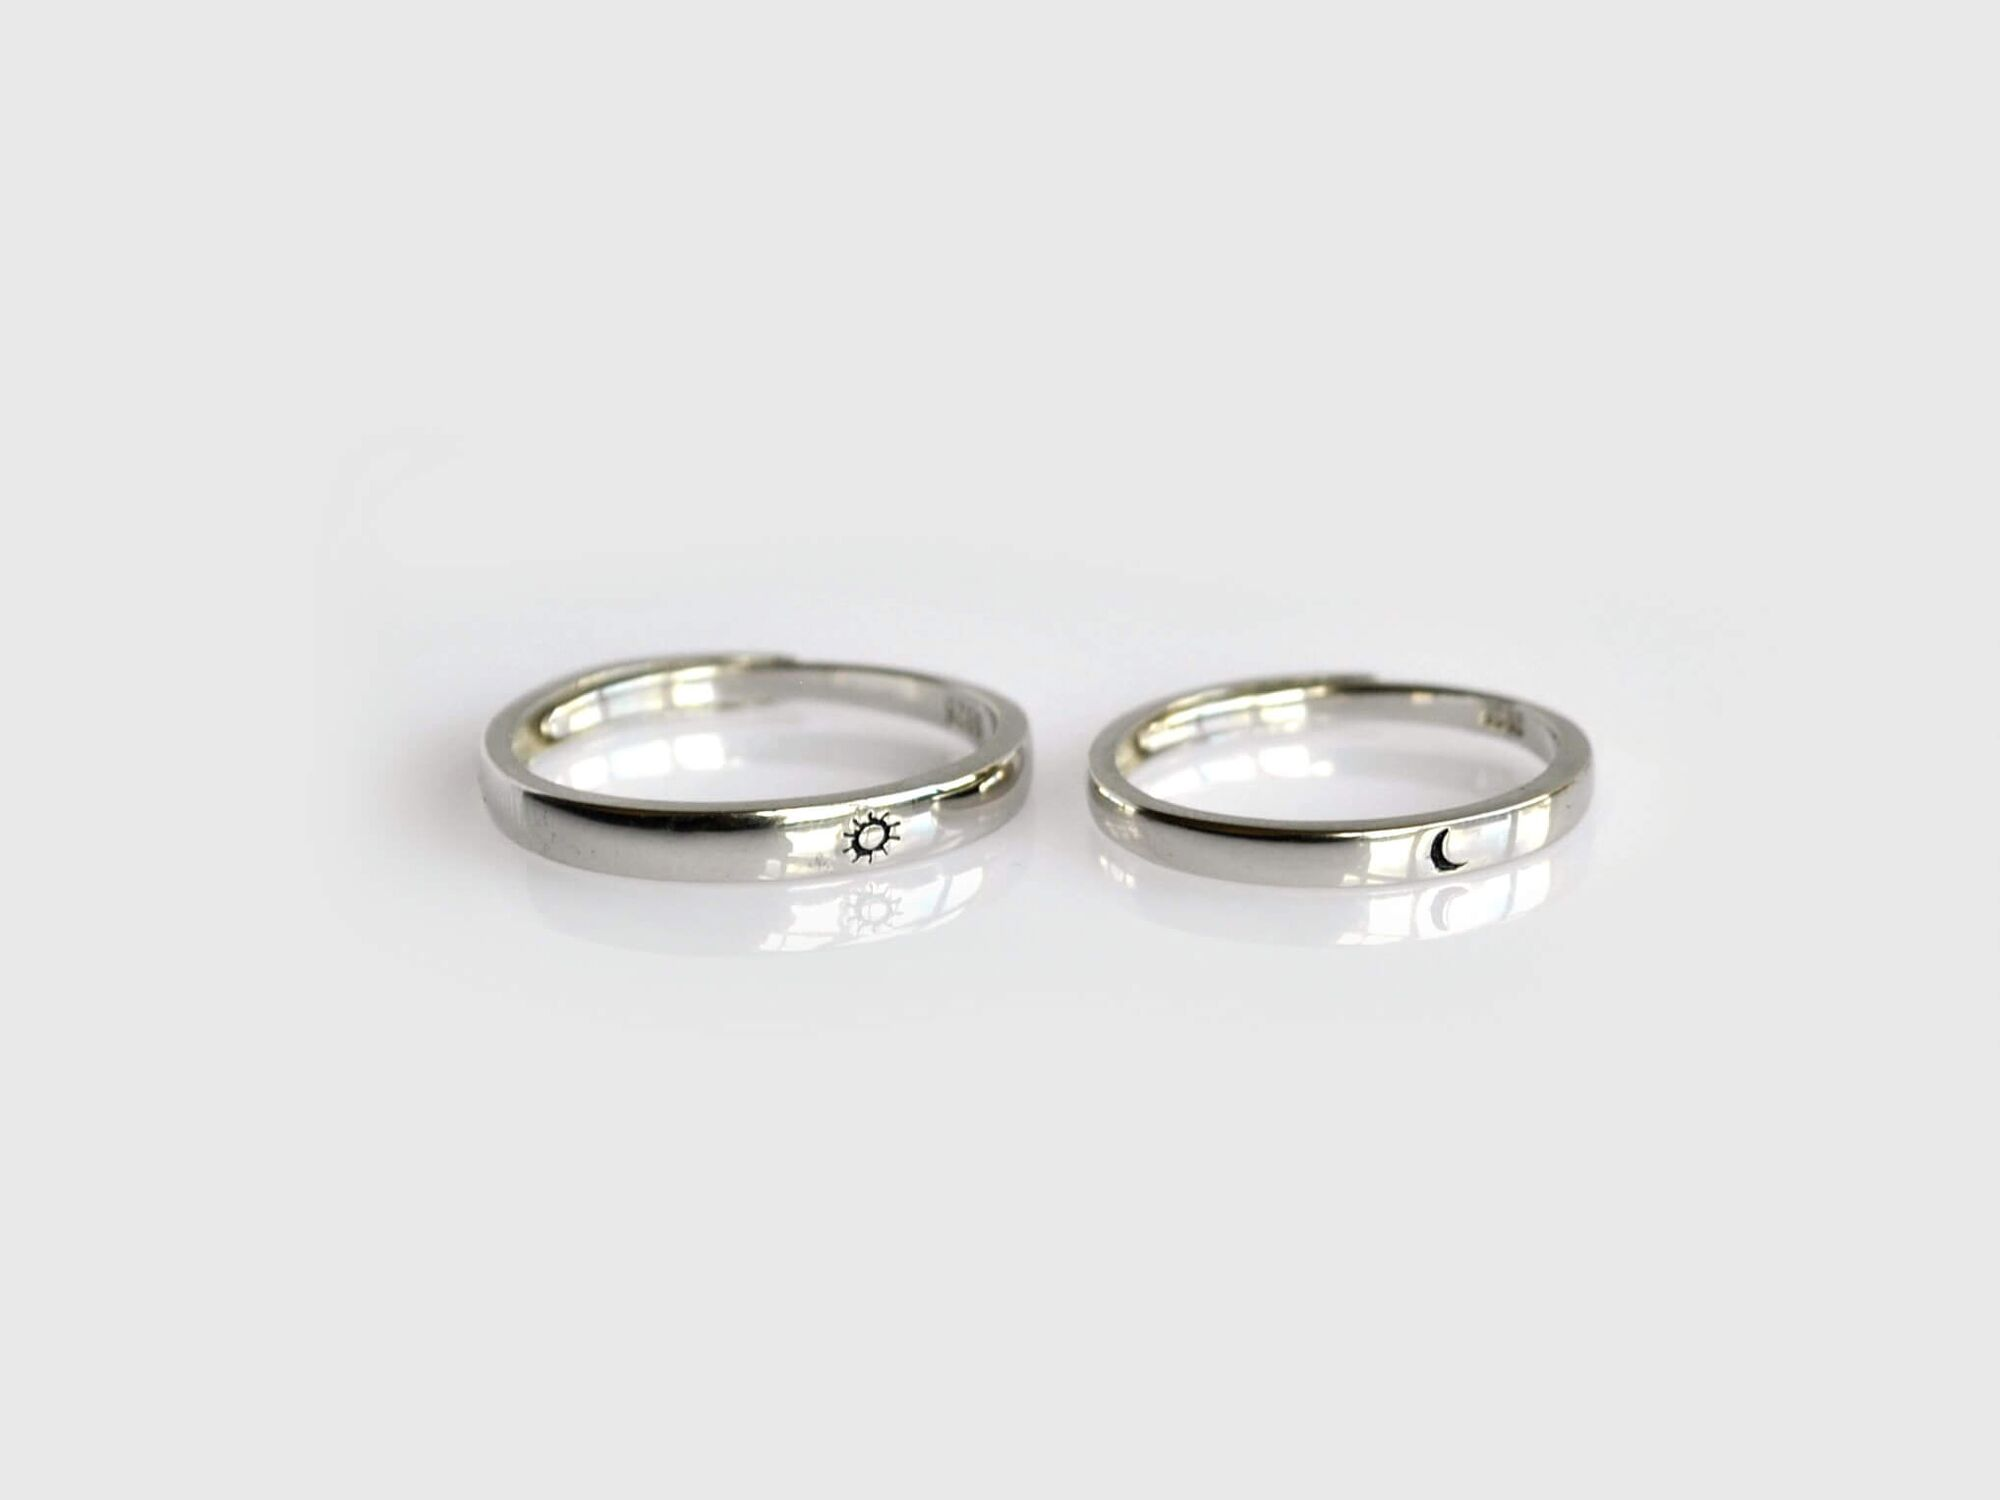 24 Promise Rings For Men Women And All Couples